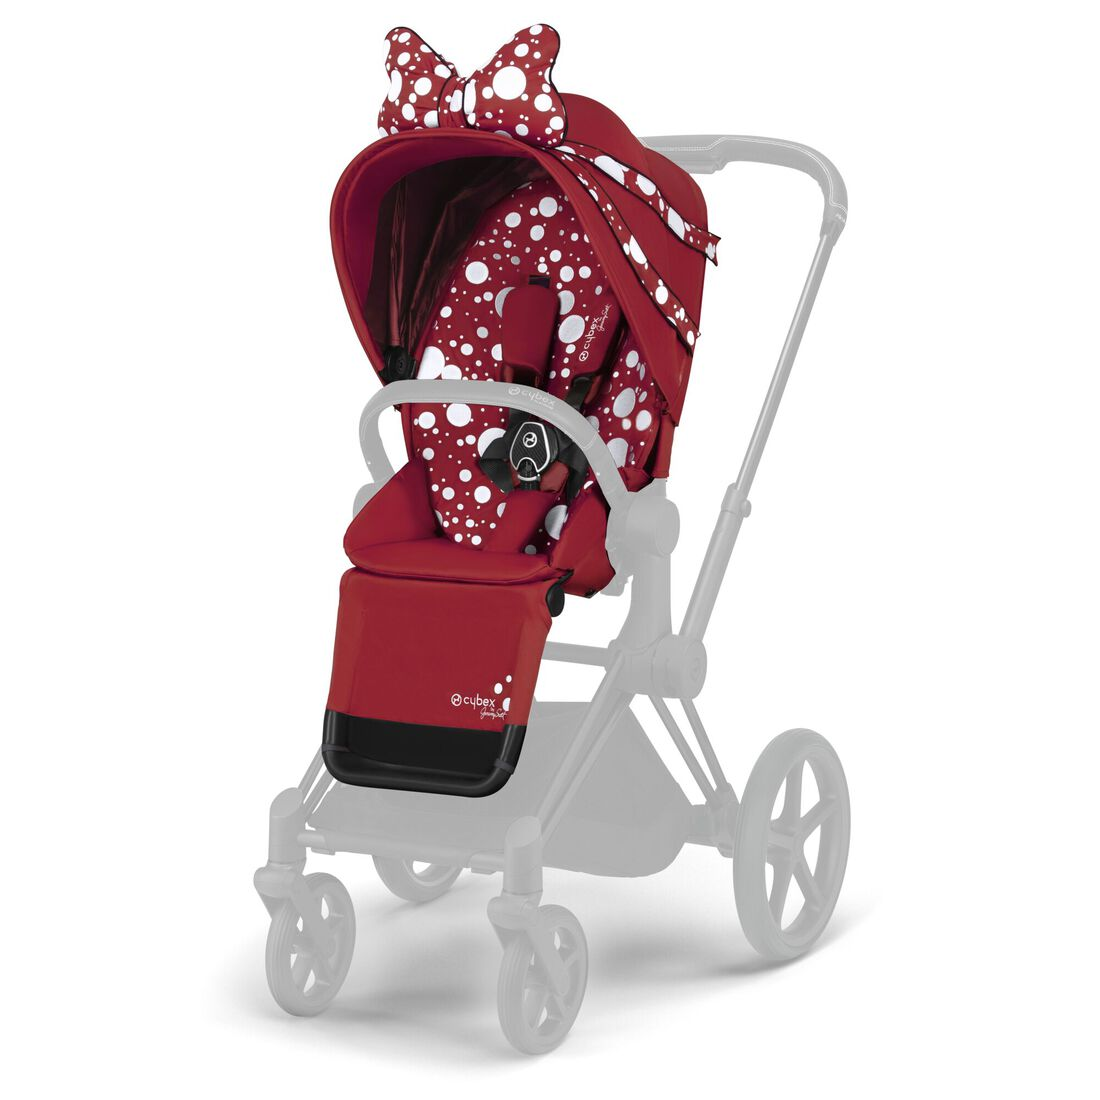 CYBEX Priam Seat Pack - Petticoat Red in Petticoat Red large image number 1